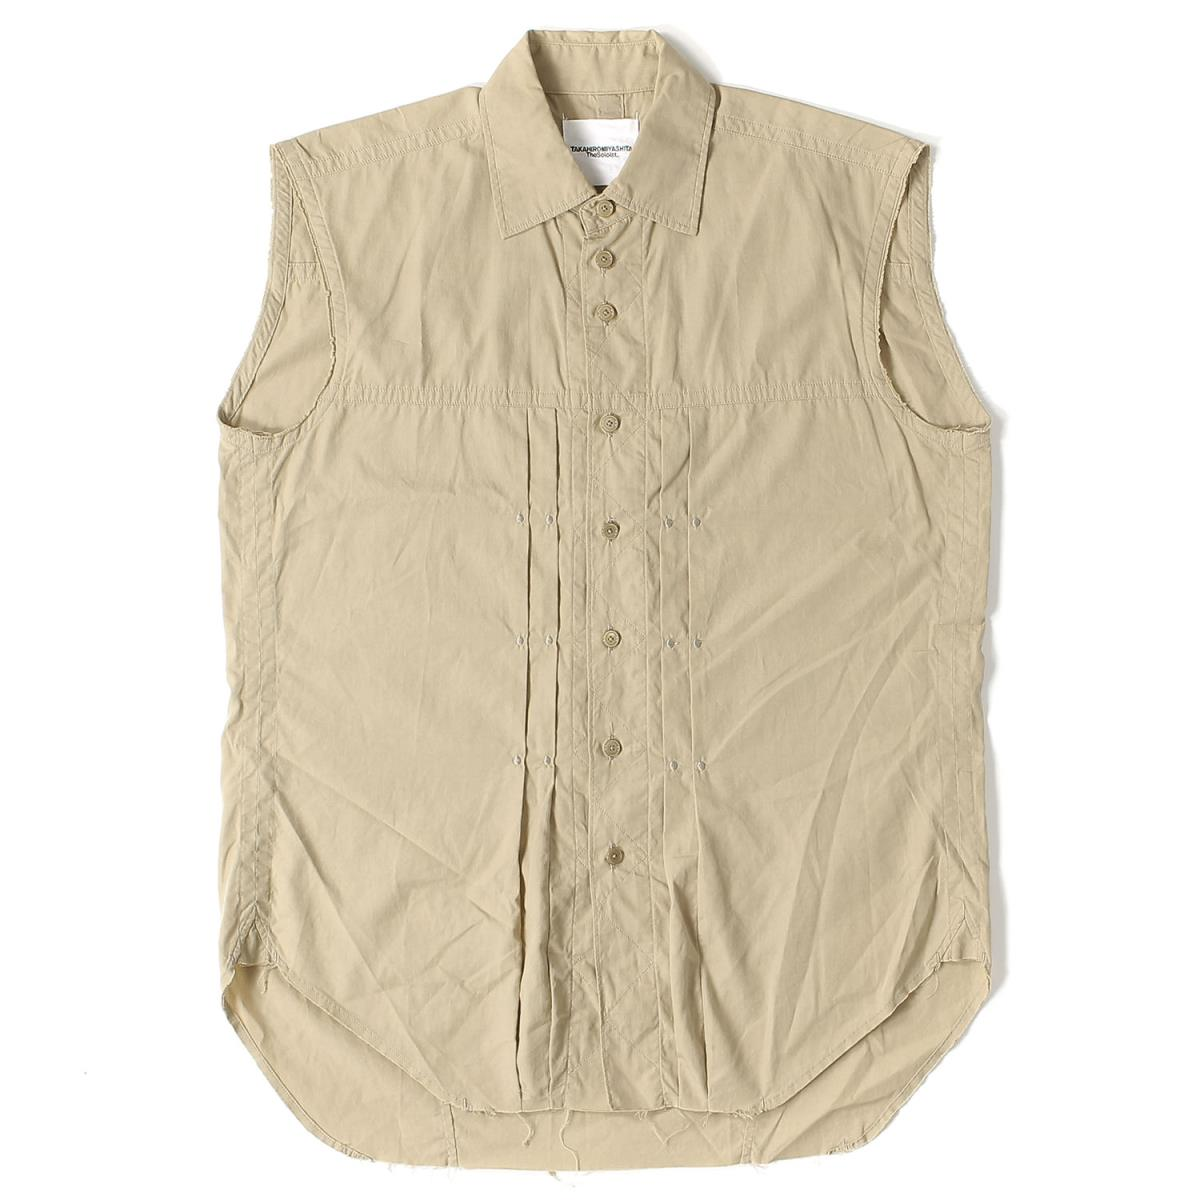 (the Solo Ist) Silk Blend Cotton No Sleeve Riders Shirt (sleeveless Riders  Shirt) Beige 44